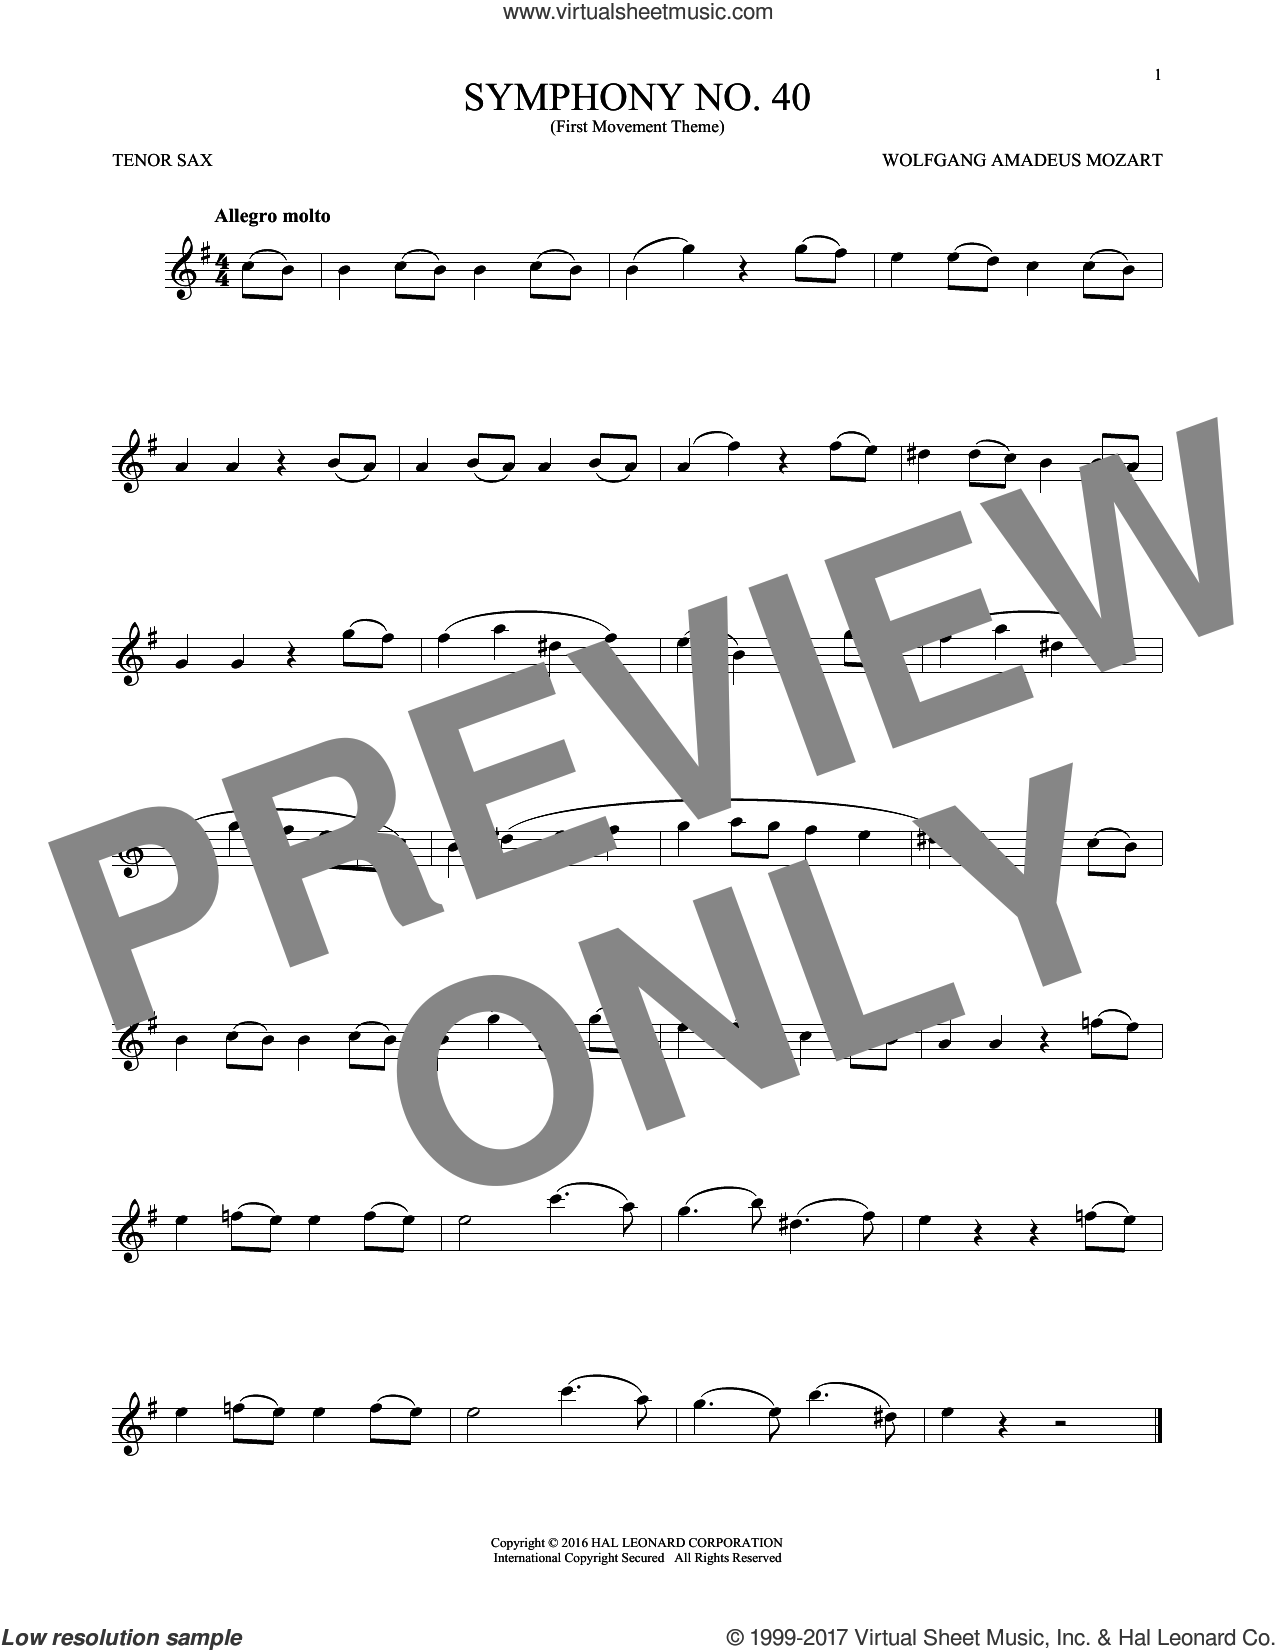 Symphony No. 40 In G Minor, First Movement Excerpt sheet music for tenor saxophone solo by Wolfgang Amadeus Mozart, classical score, intermediate skill level